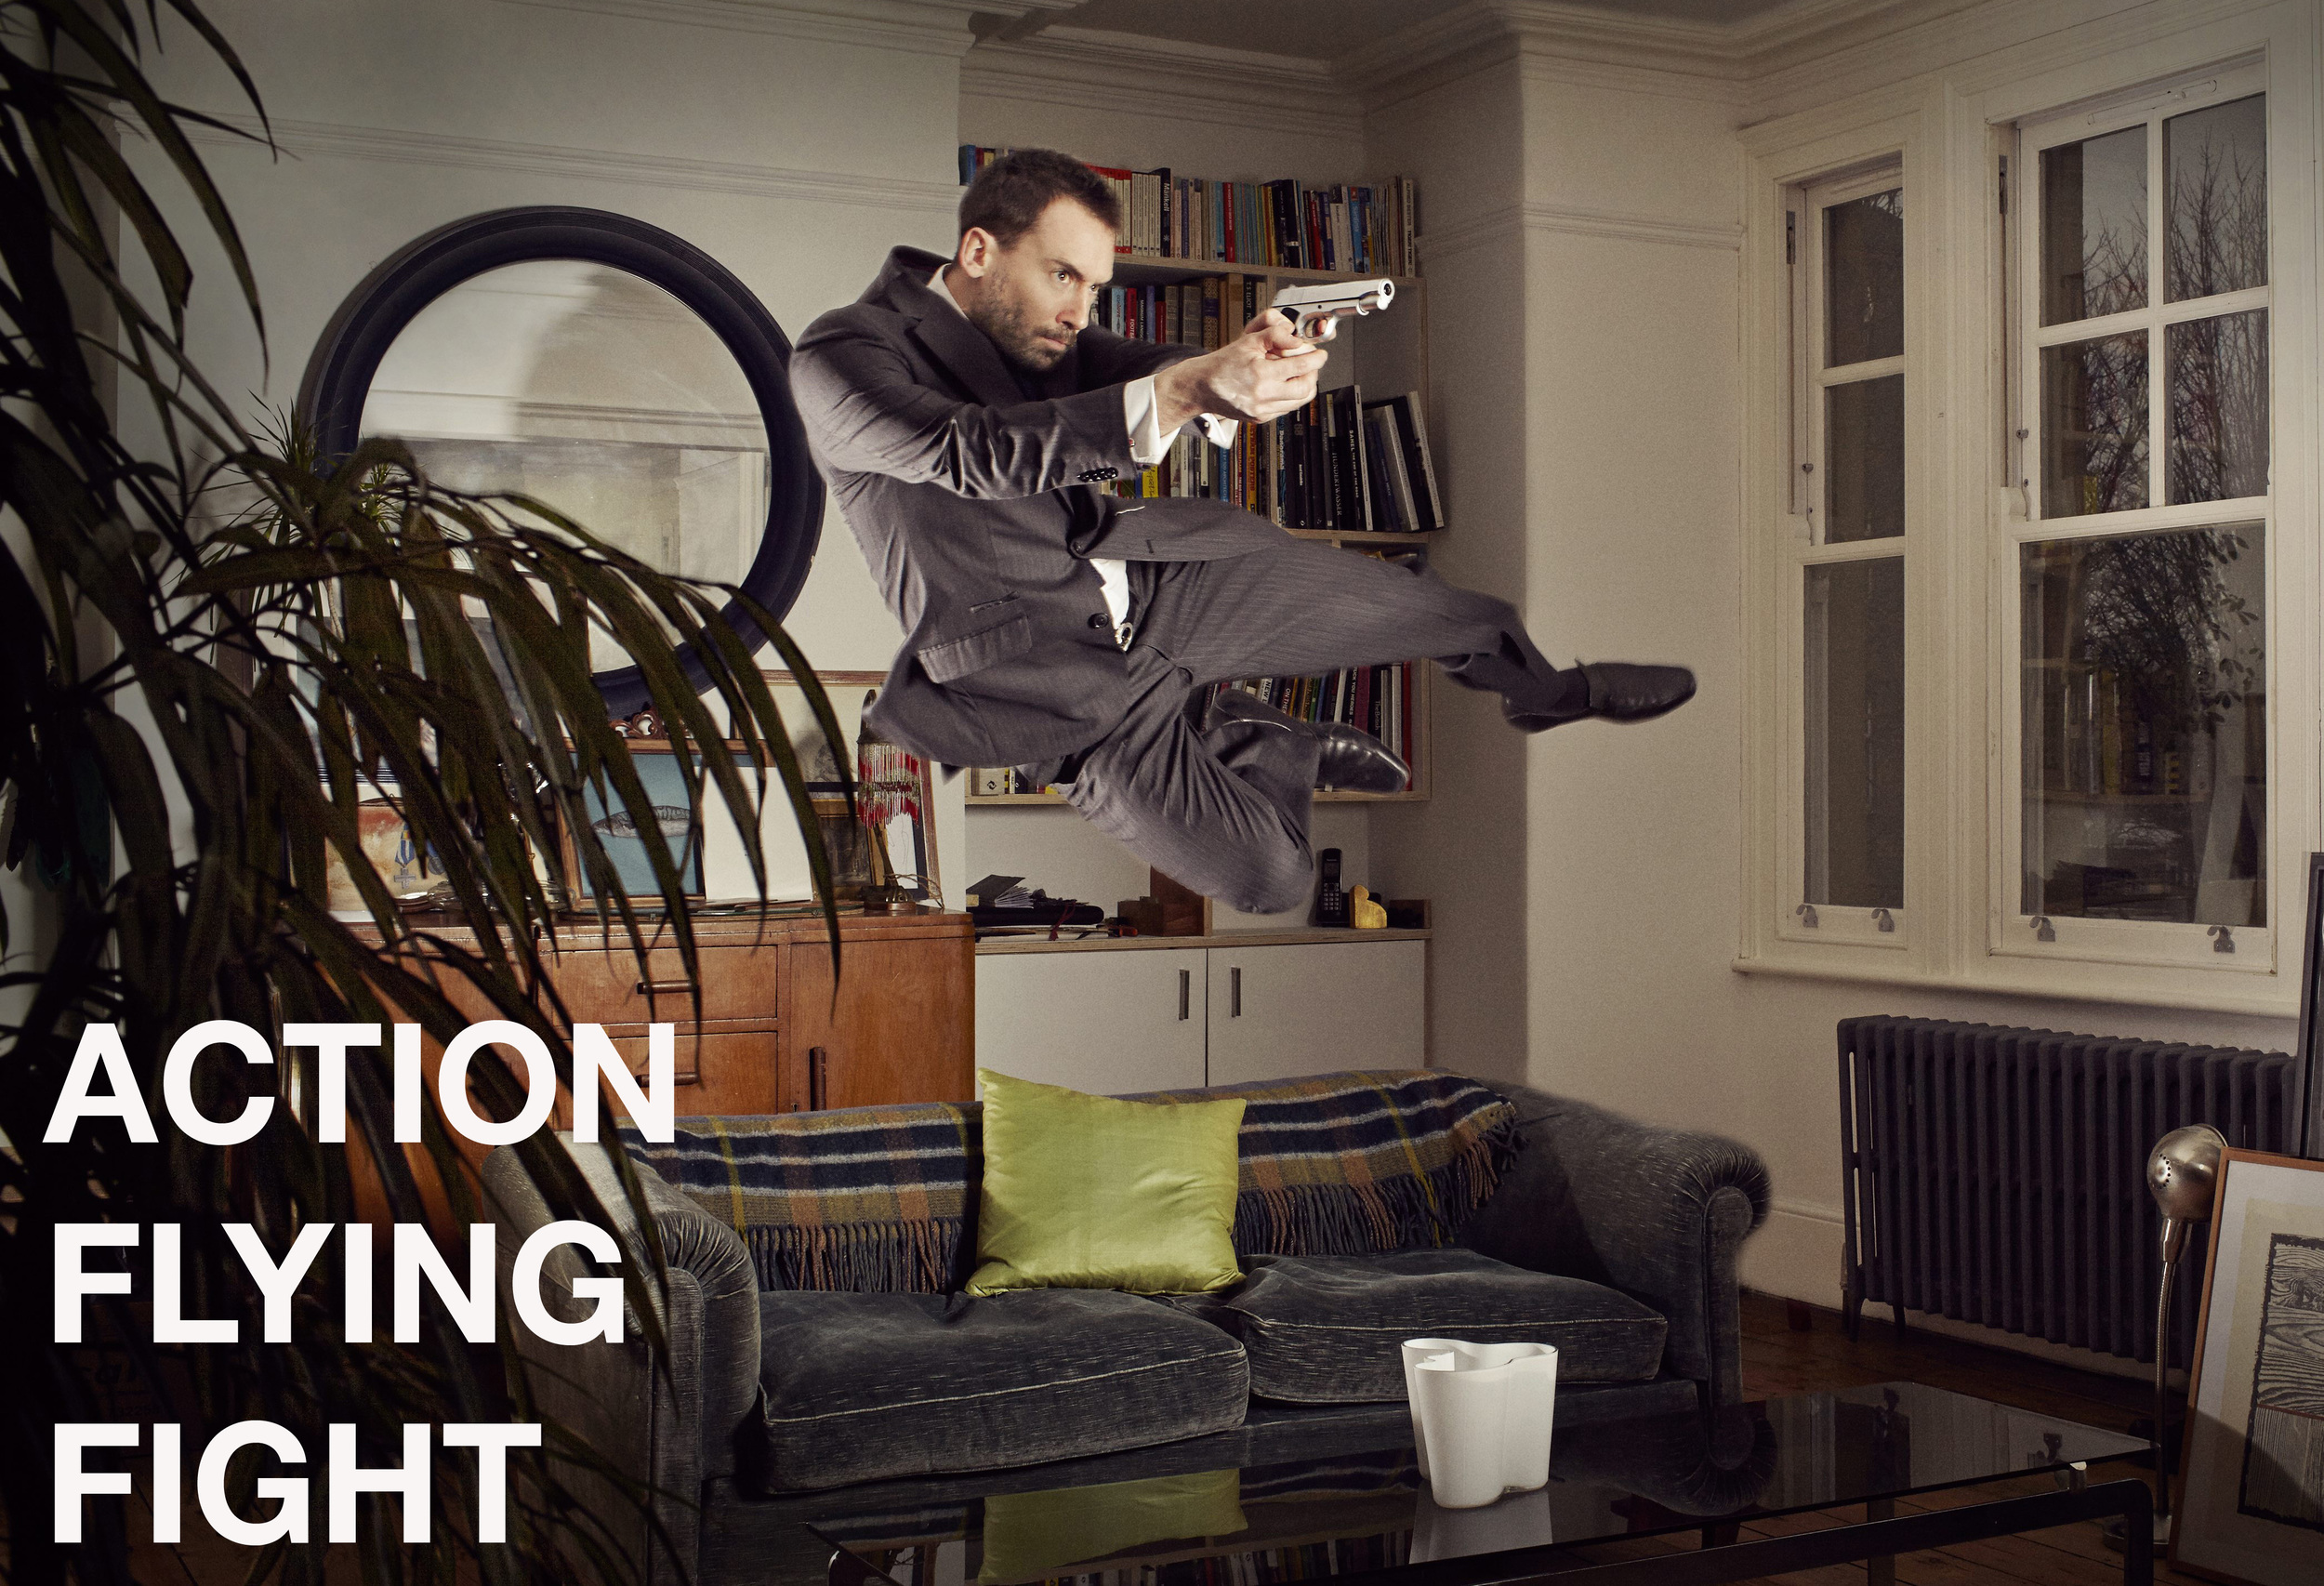 Action shoot (web poster).jpg